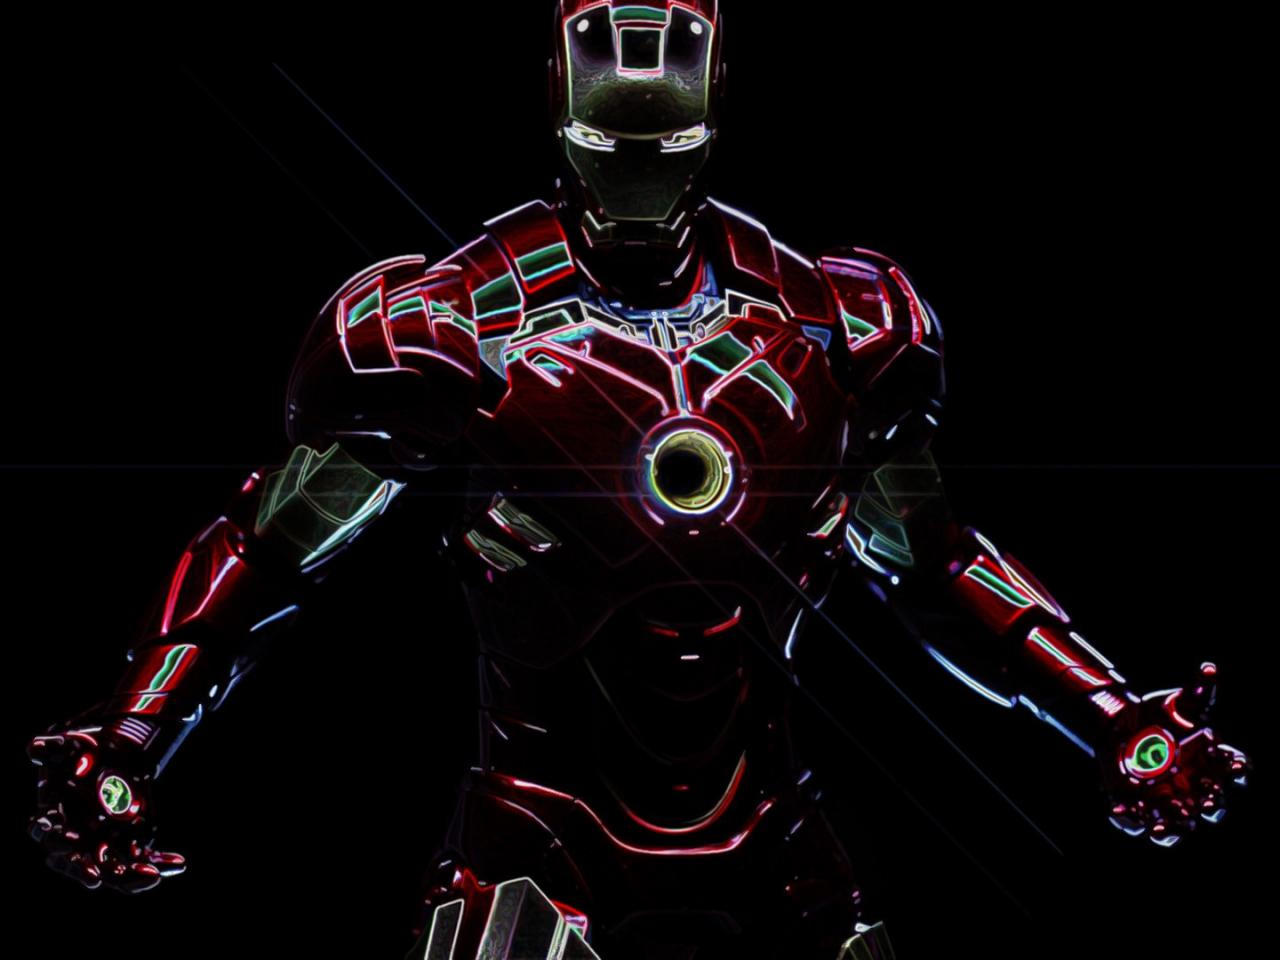 Hd Wallpapers Iron Man: HD Wallpapers 1080p With Superheroes